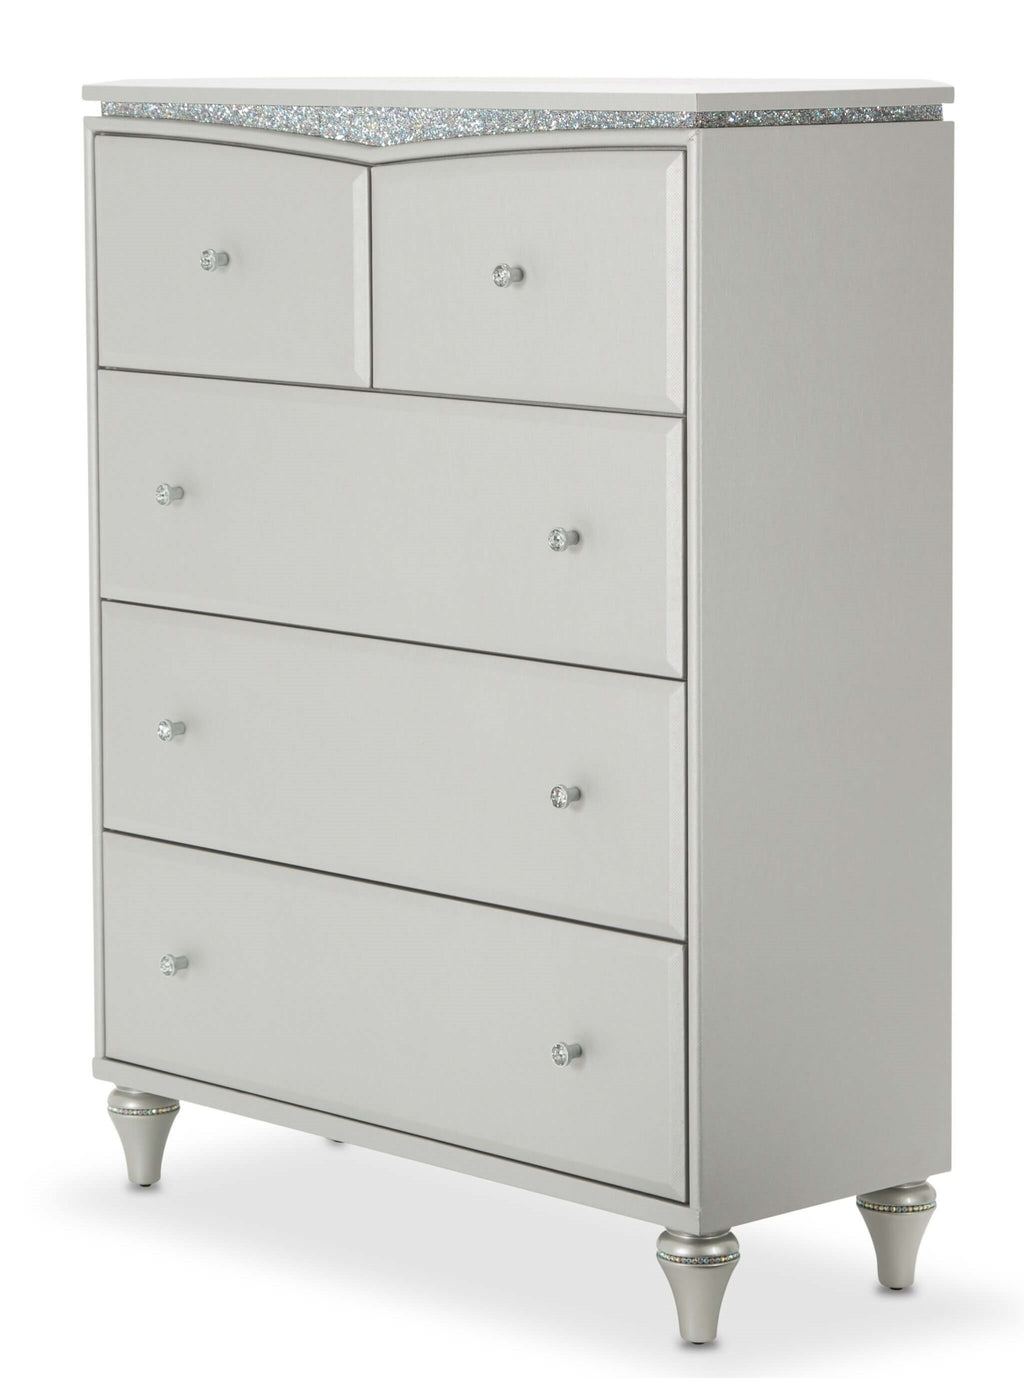 Aico Amini Melrose Plaza Upholstered 5 Drawer Chest in Dove Grey - The Furniture Space.